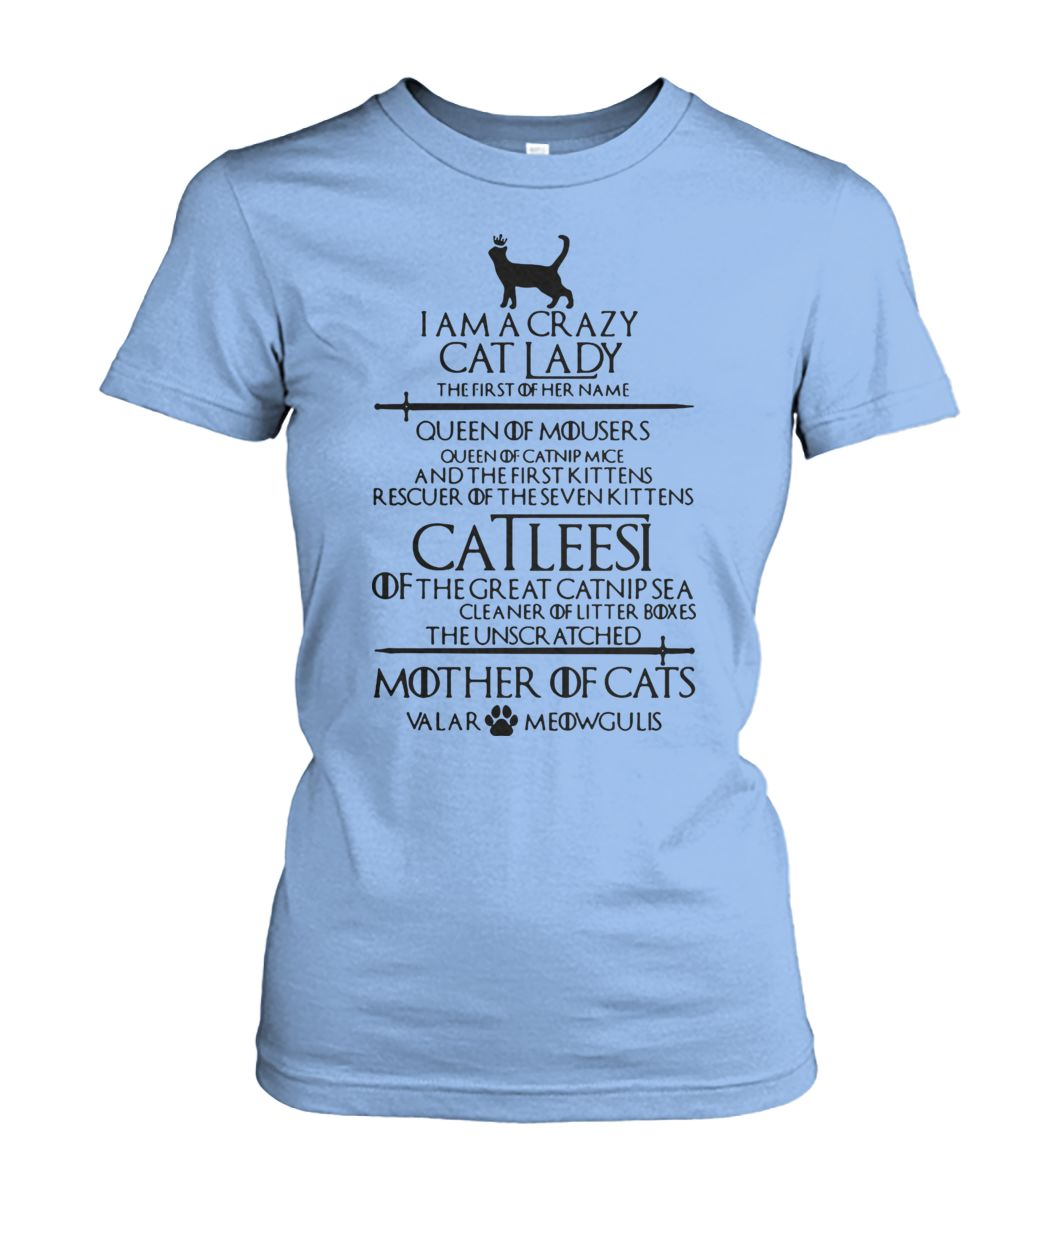 Game of thrones I am a crazy cat lady queen of mousers catleesi mother of cats women's crew tee